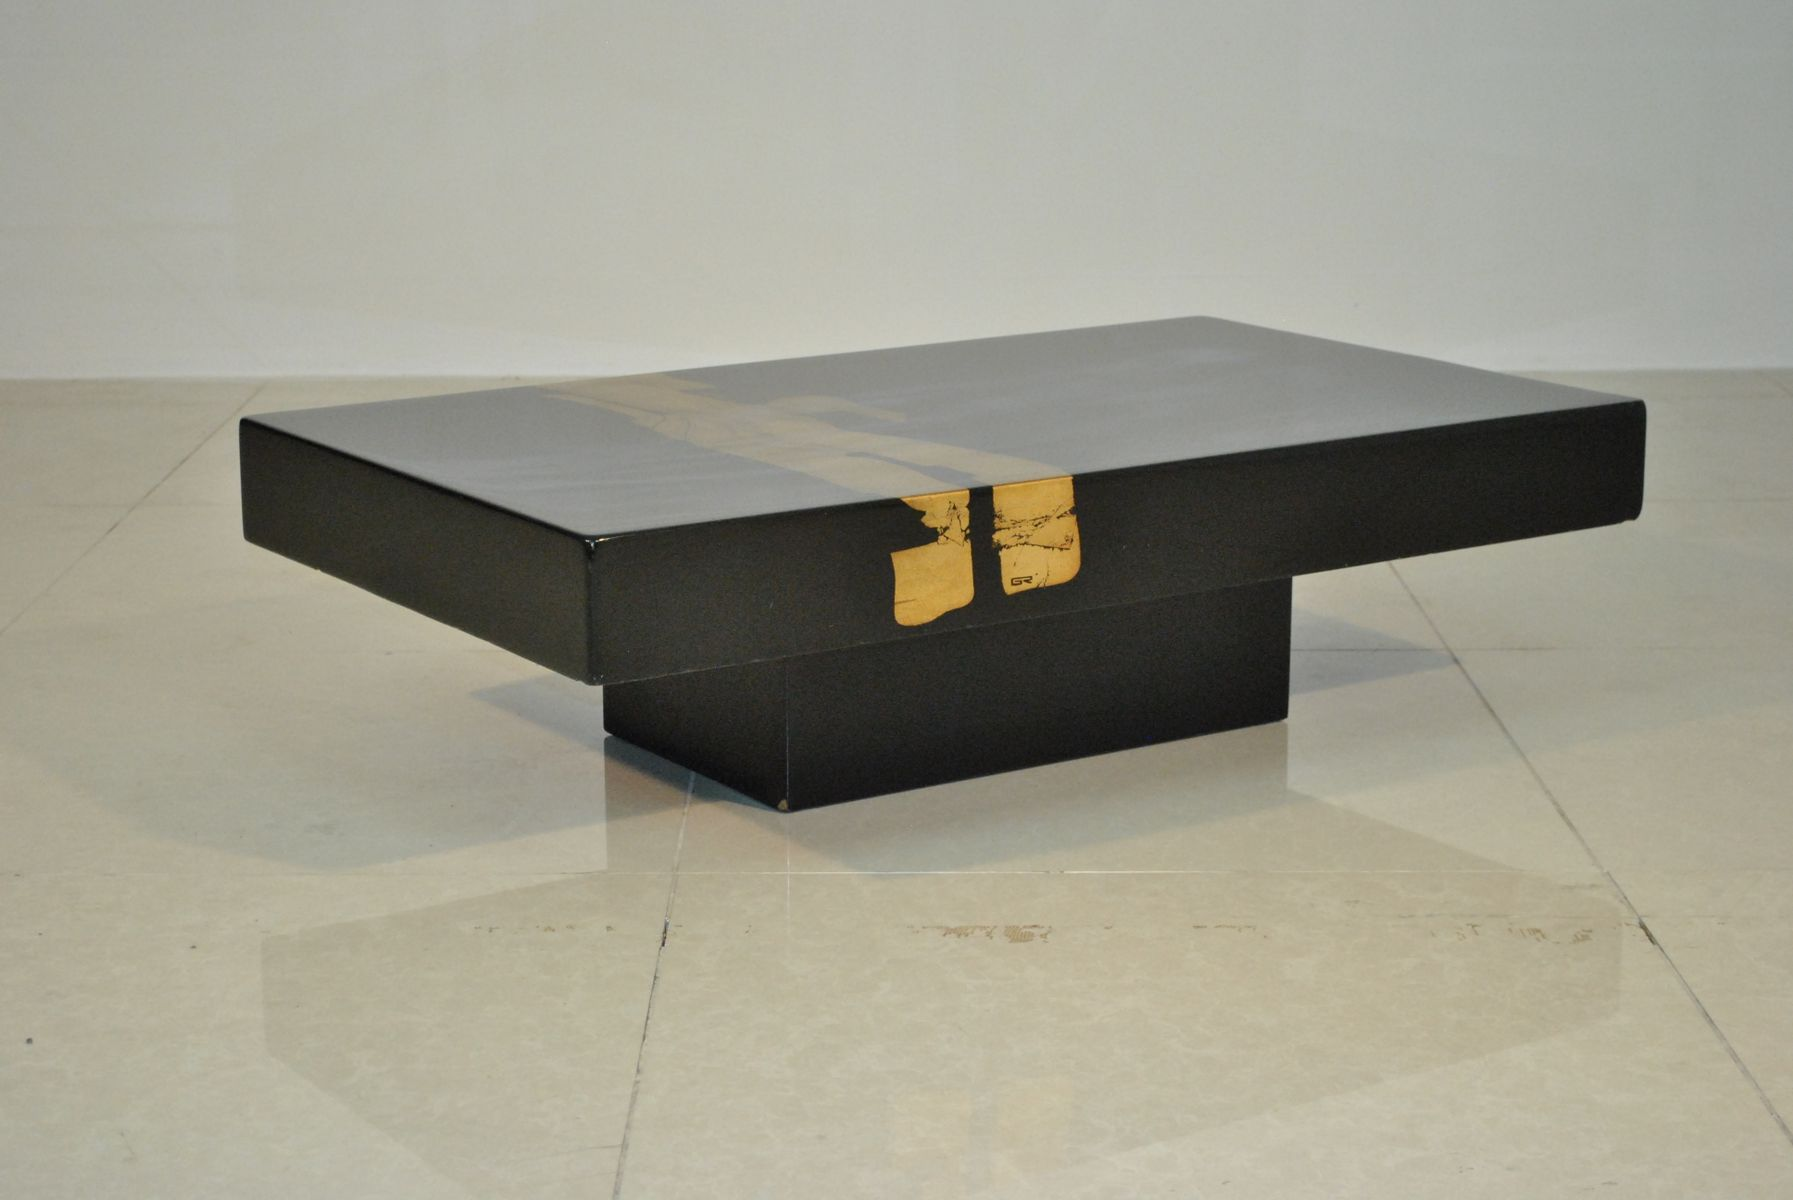 french lacquer & gold leaf coffee table, 1970s for sale at pamono